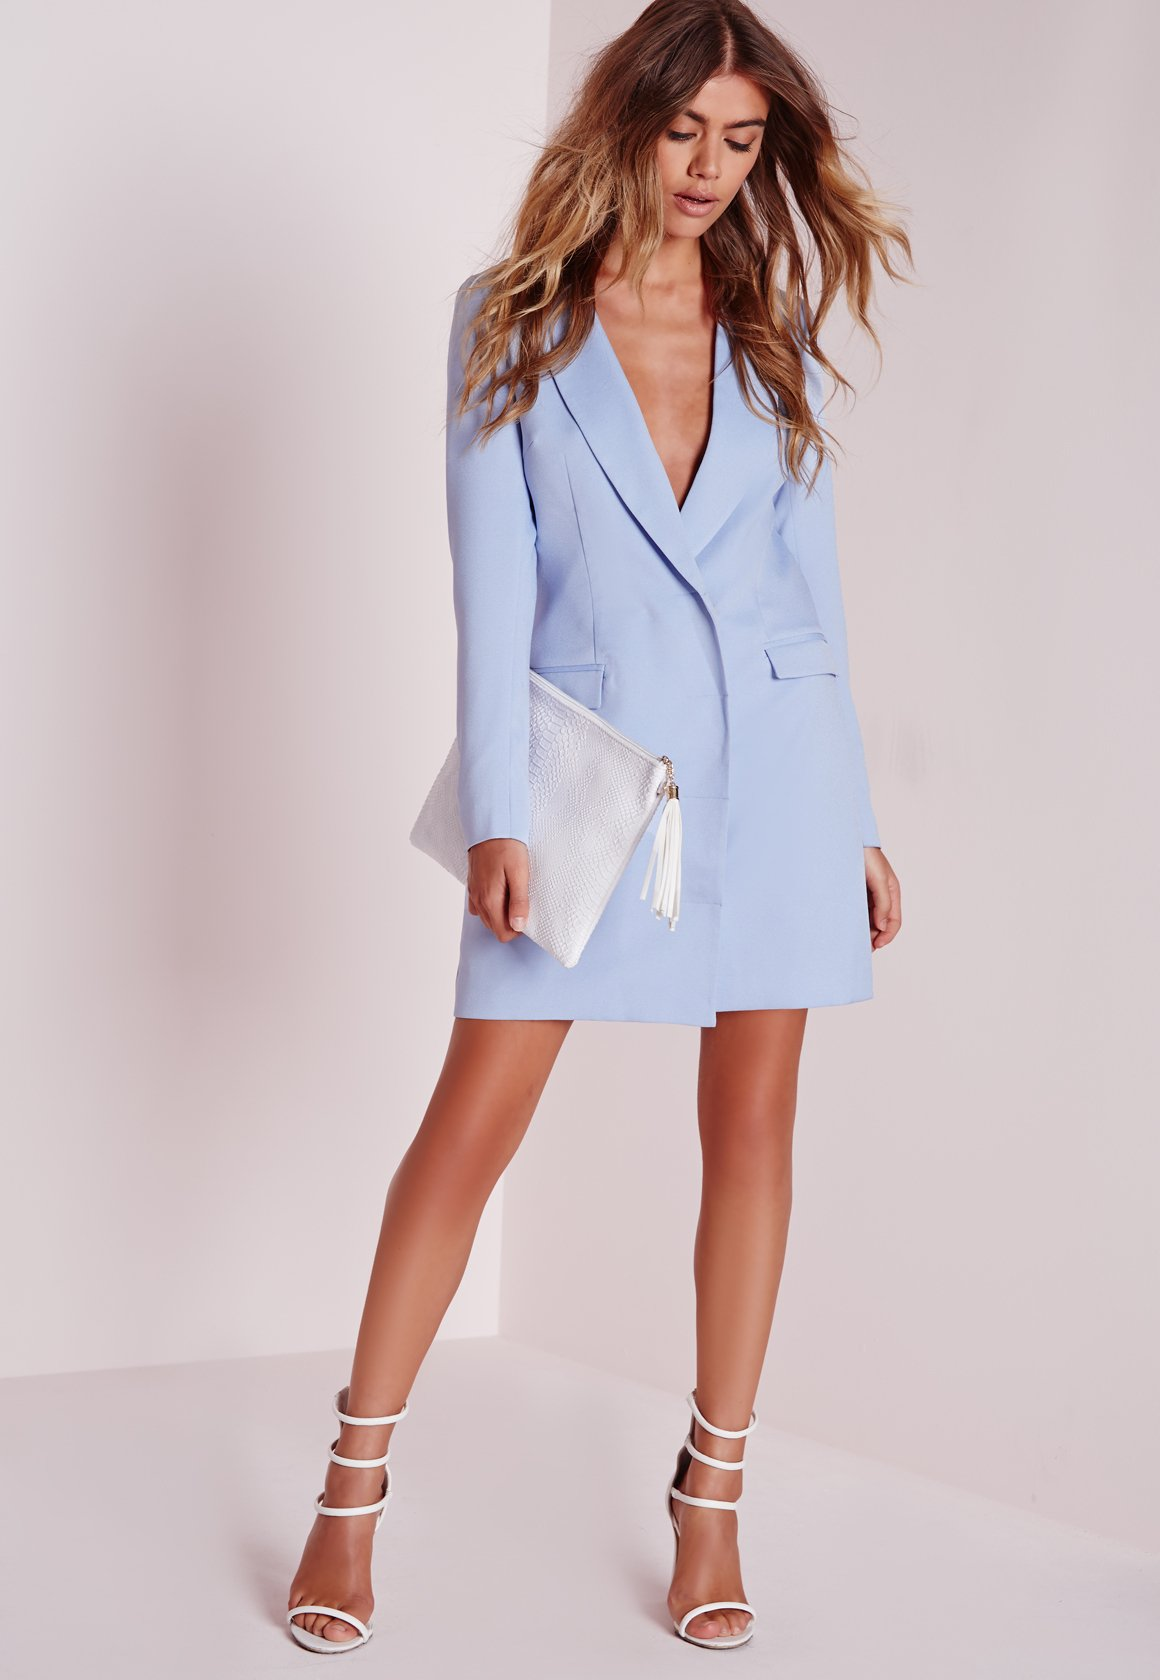 Missguided Long Sleeve Blazer Dress Blue In Blue | Lyst